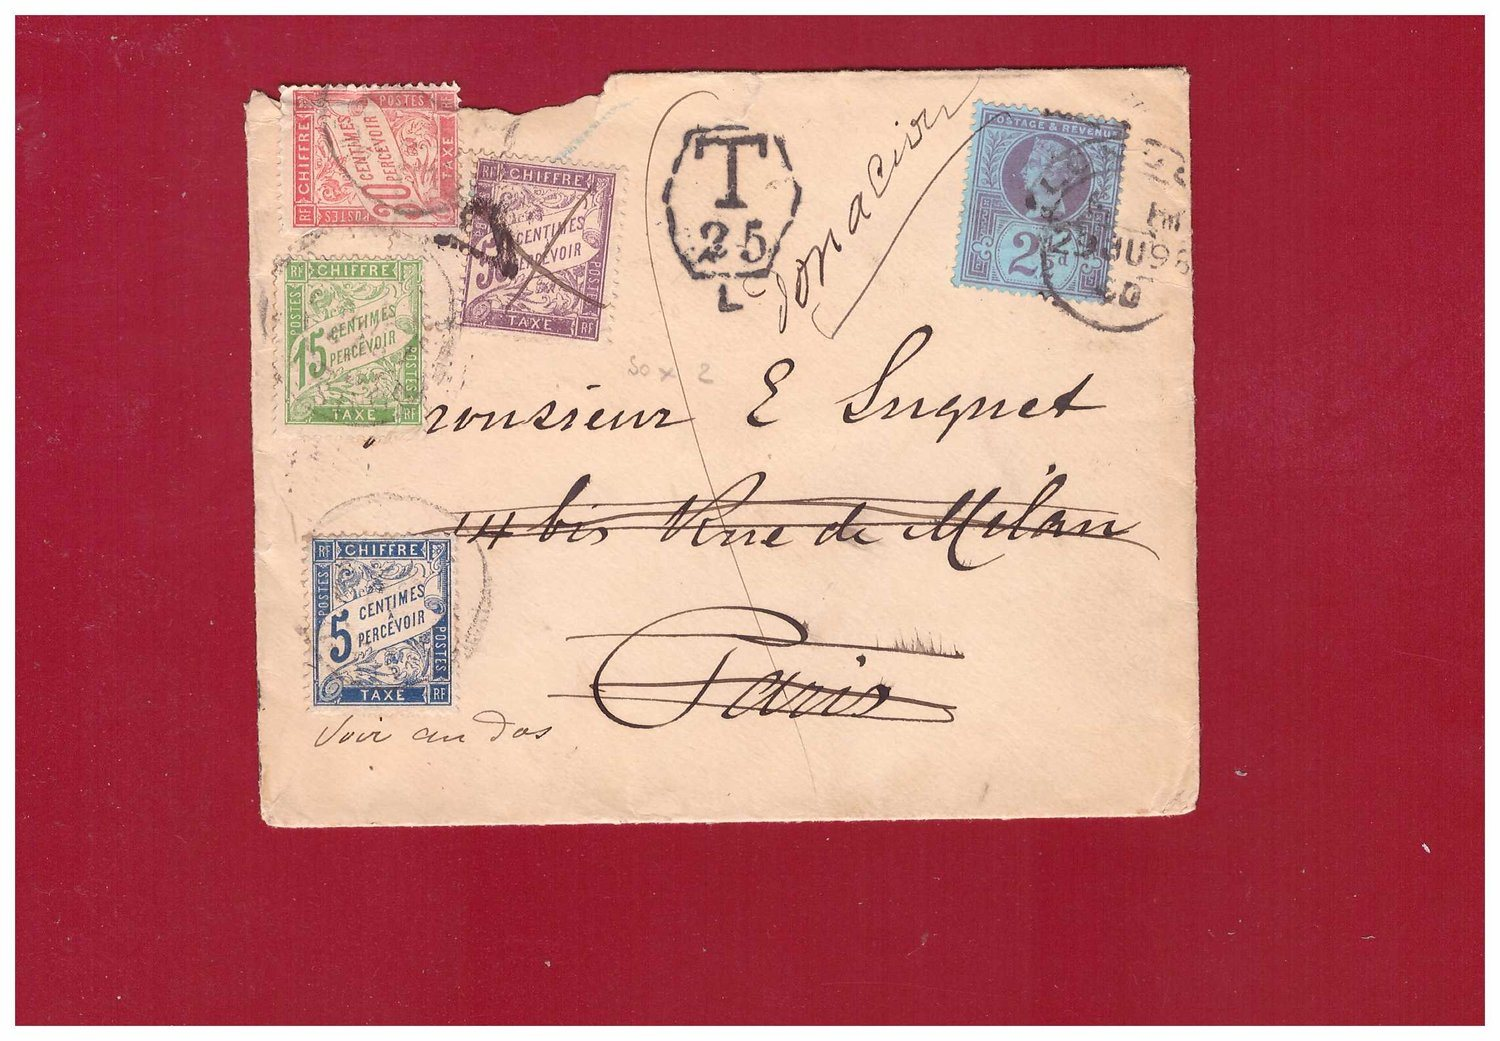 FRANCE. Cover from England, Postage due. 1895.